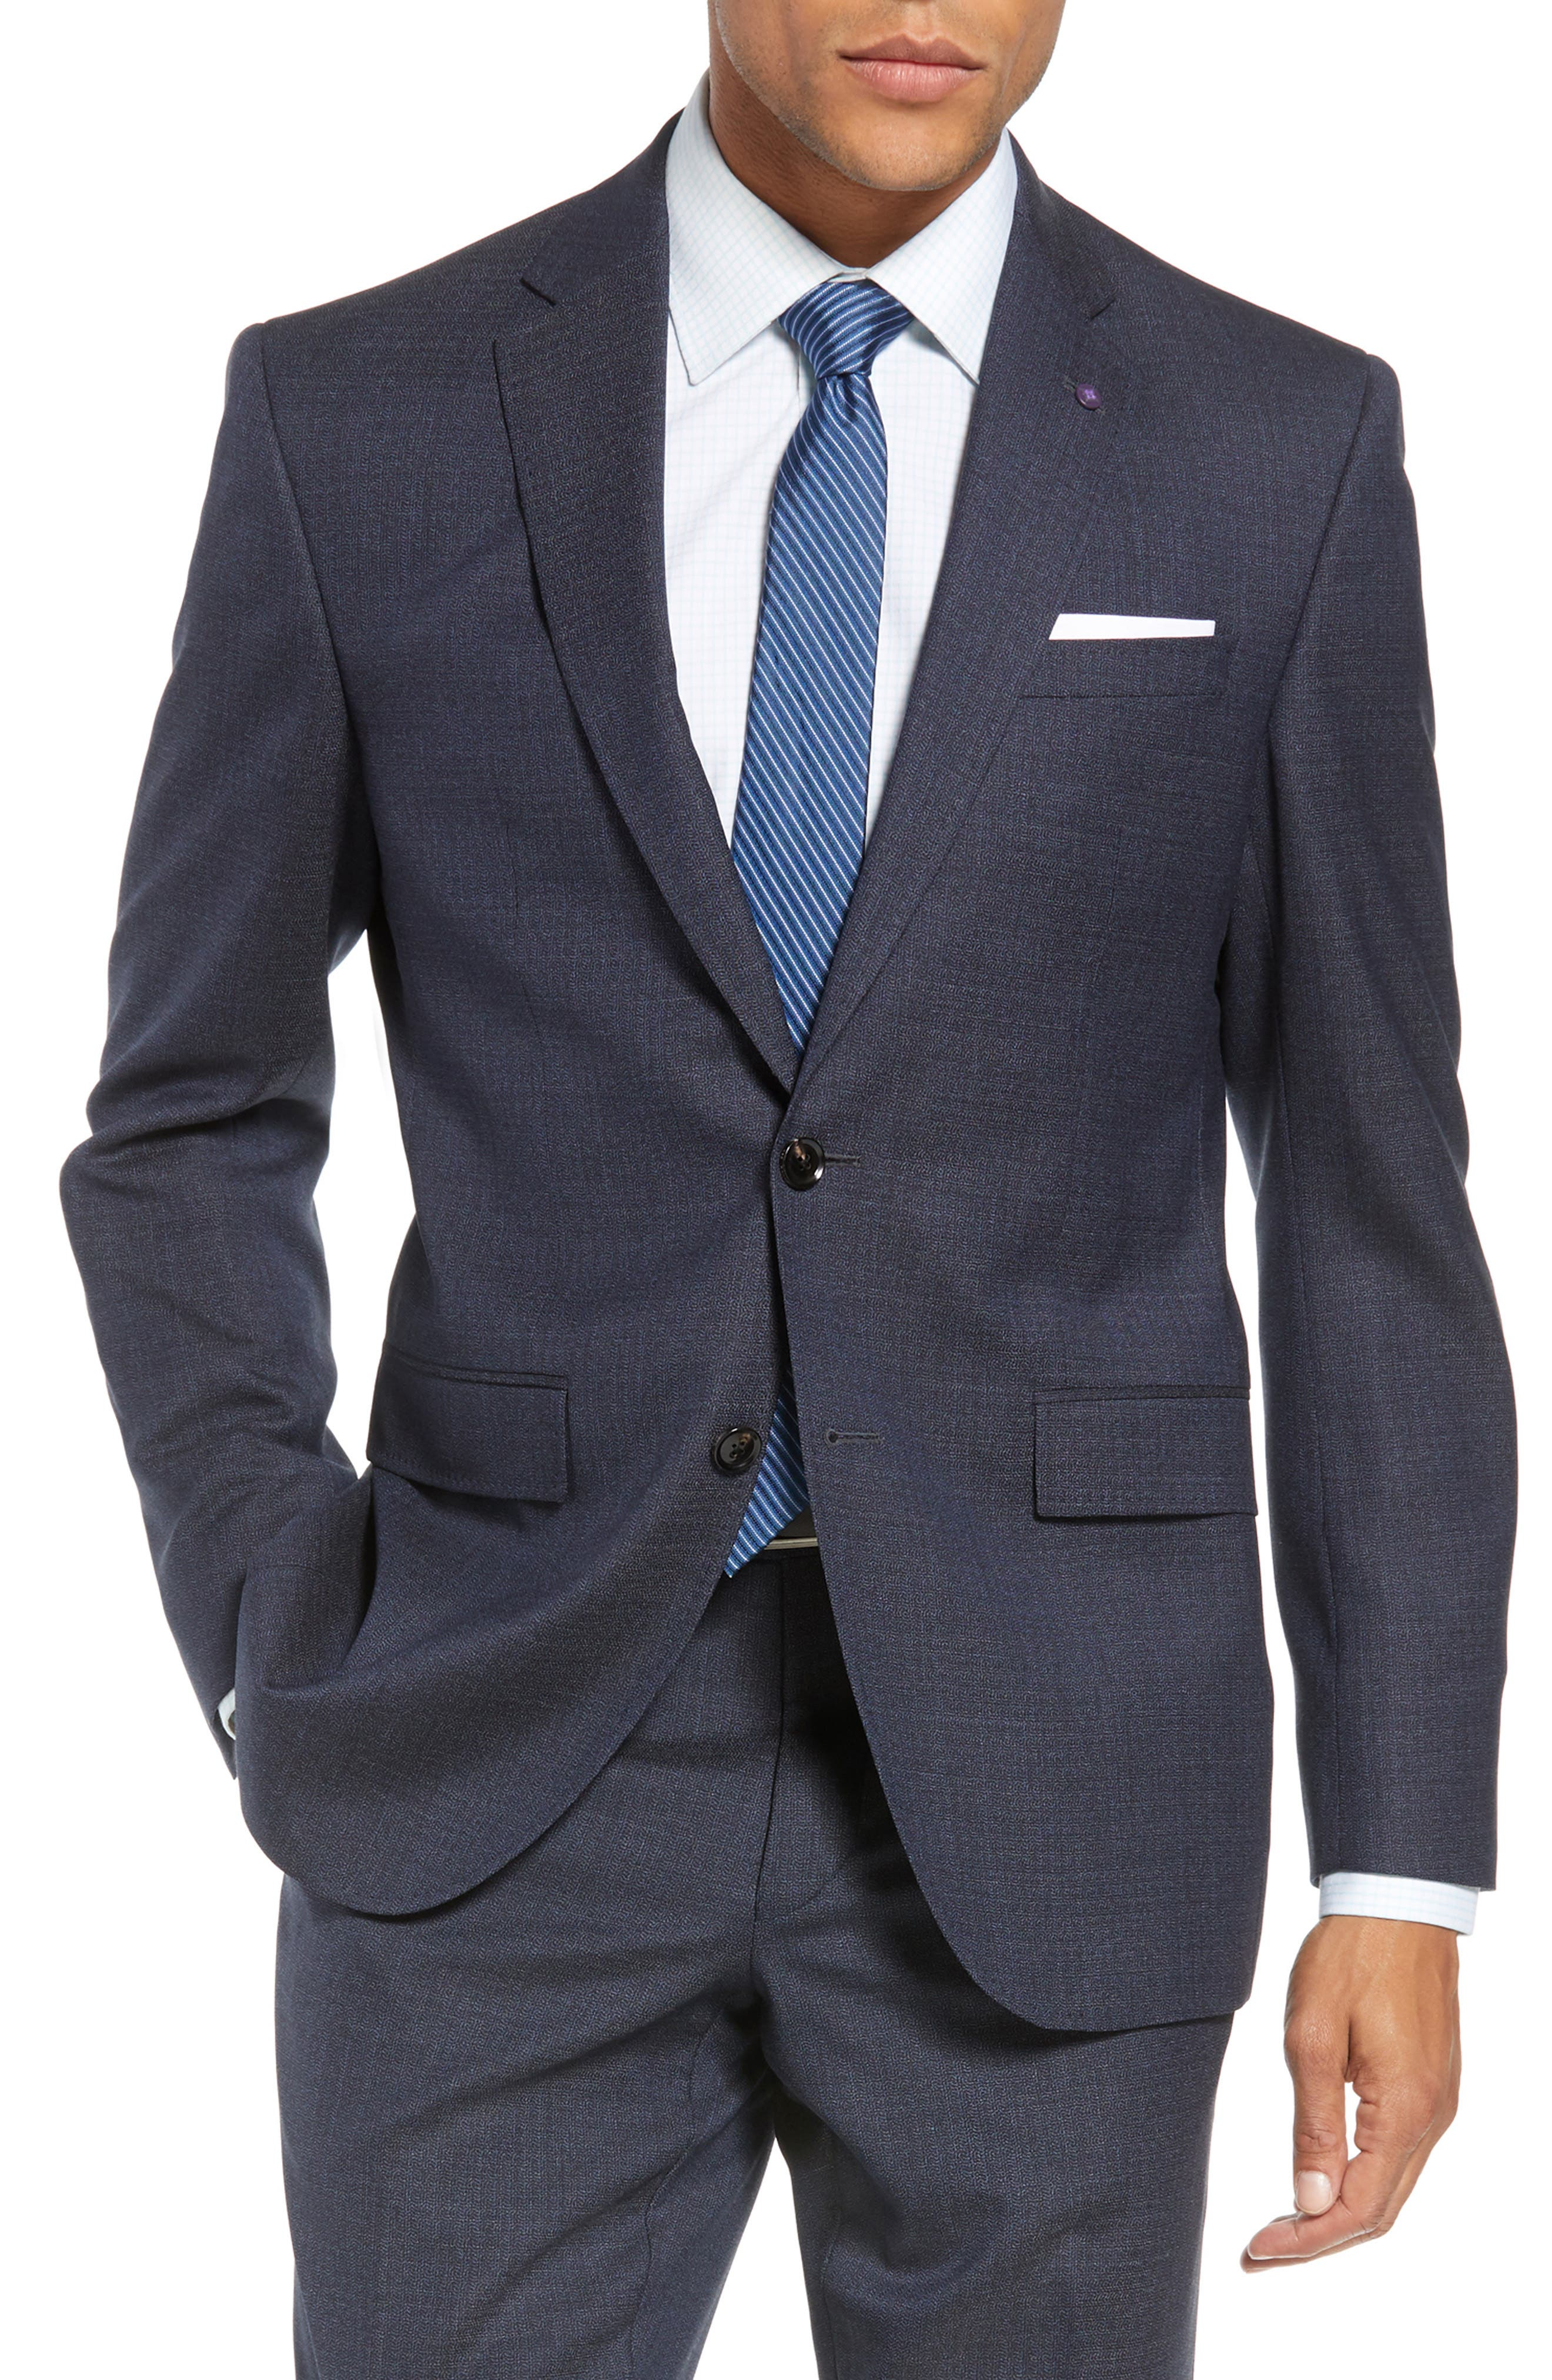 Jay Trim Fit Solid Wool Suit,                             Alternate thumbnail 5, color,                             020